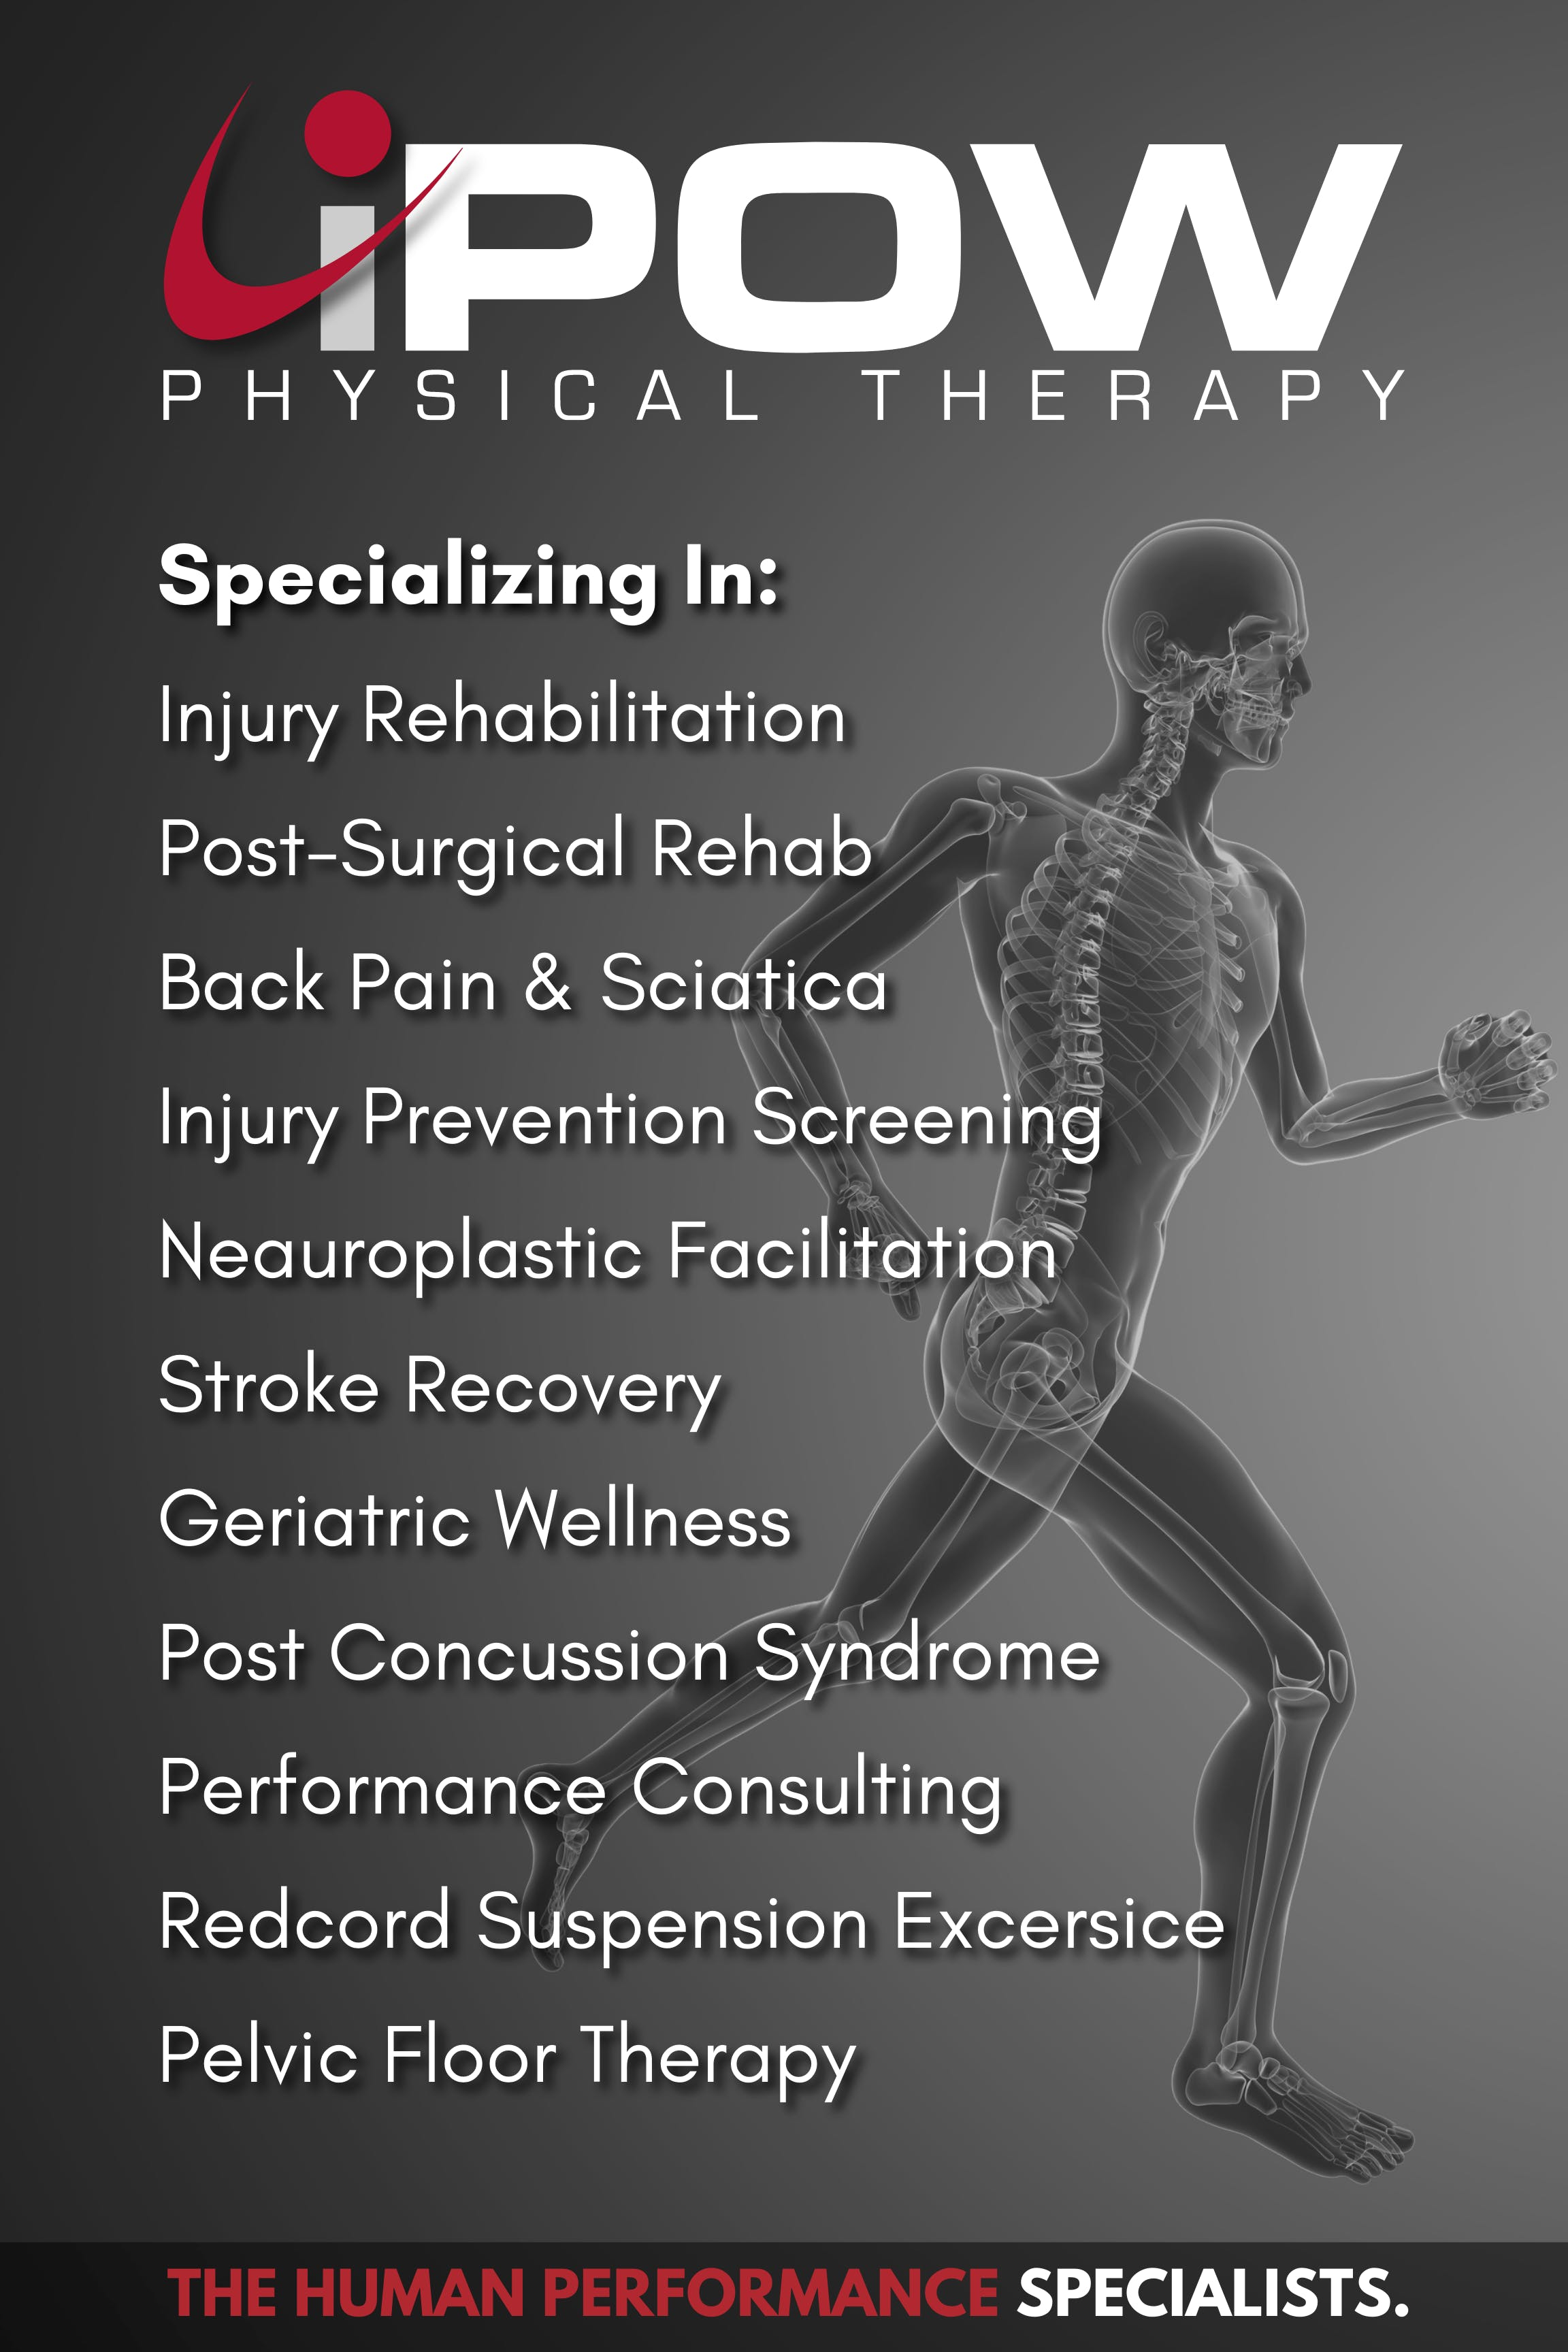 Specializing in: Injury Rehabilitation, Post-surgical Rehab, Back Pain & Sciatica, Injury Prevention Screening, Neuroplastic Facilitation, Stroke Recovery, Geriatric Wellness, Post Concussion Syndrome, Sports Performance Consulting, Redcord Suspension Exercise